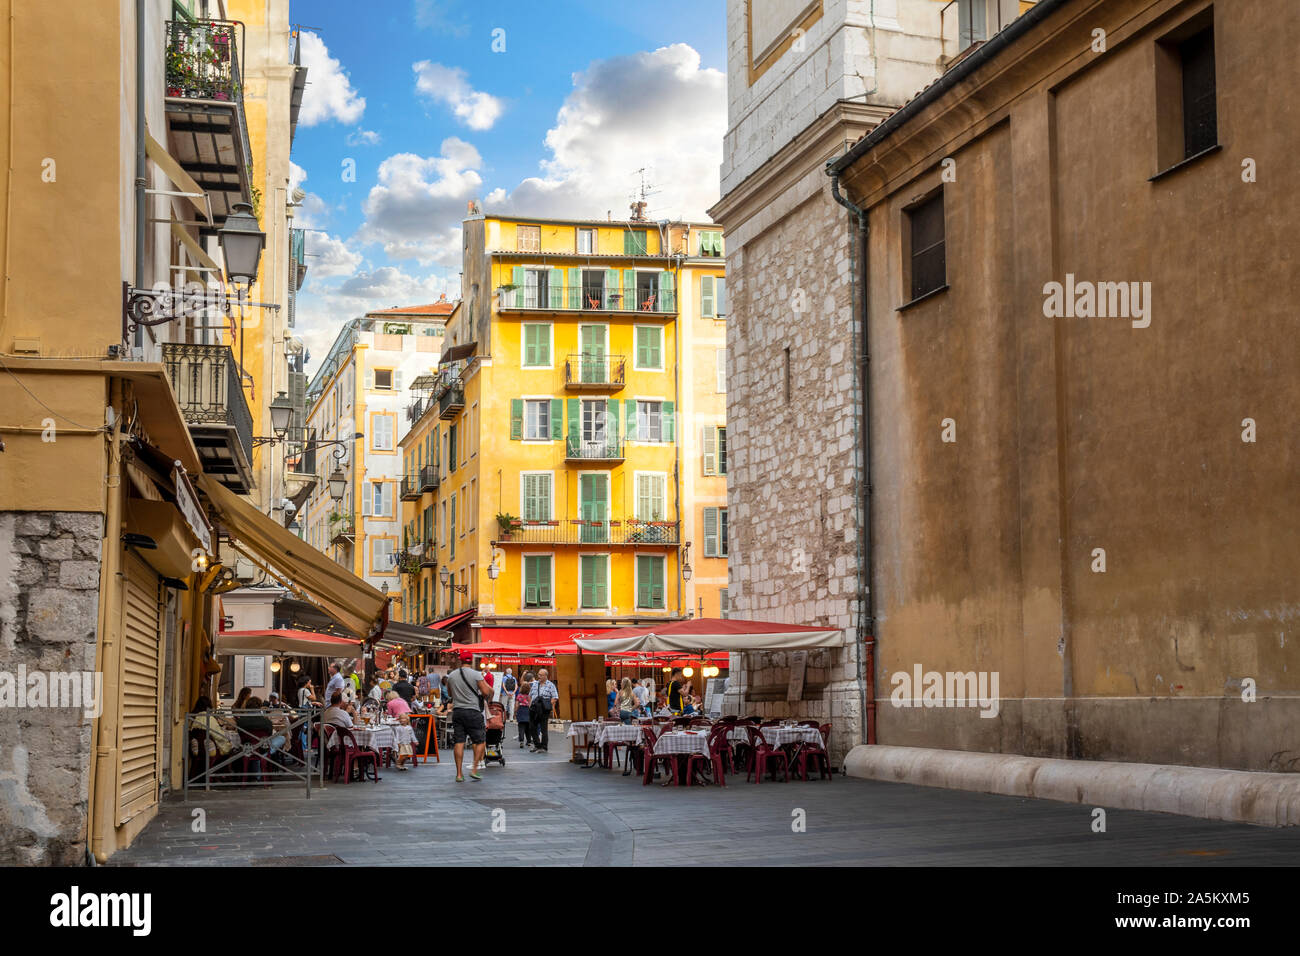 Tourists enjoy a lively late afternoon at the shops and cafes in Place Rossetti, in the old town center of Nice, France, on the French Riviera. Stock Photo